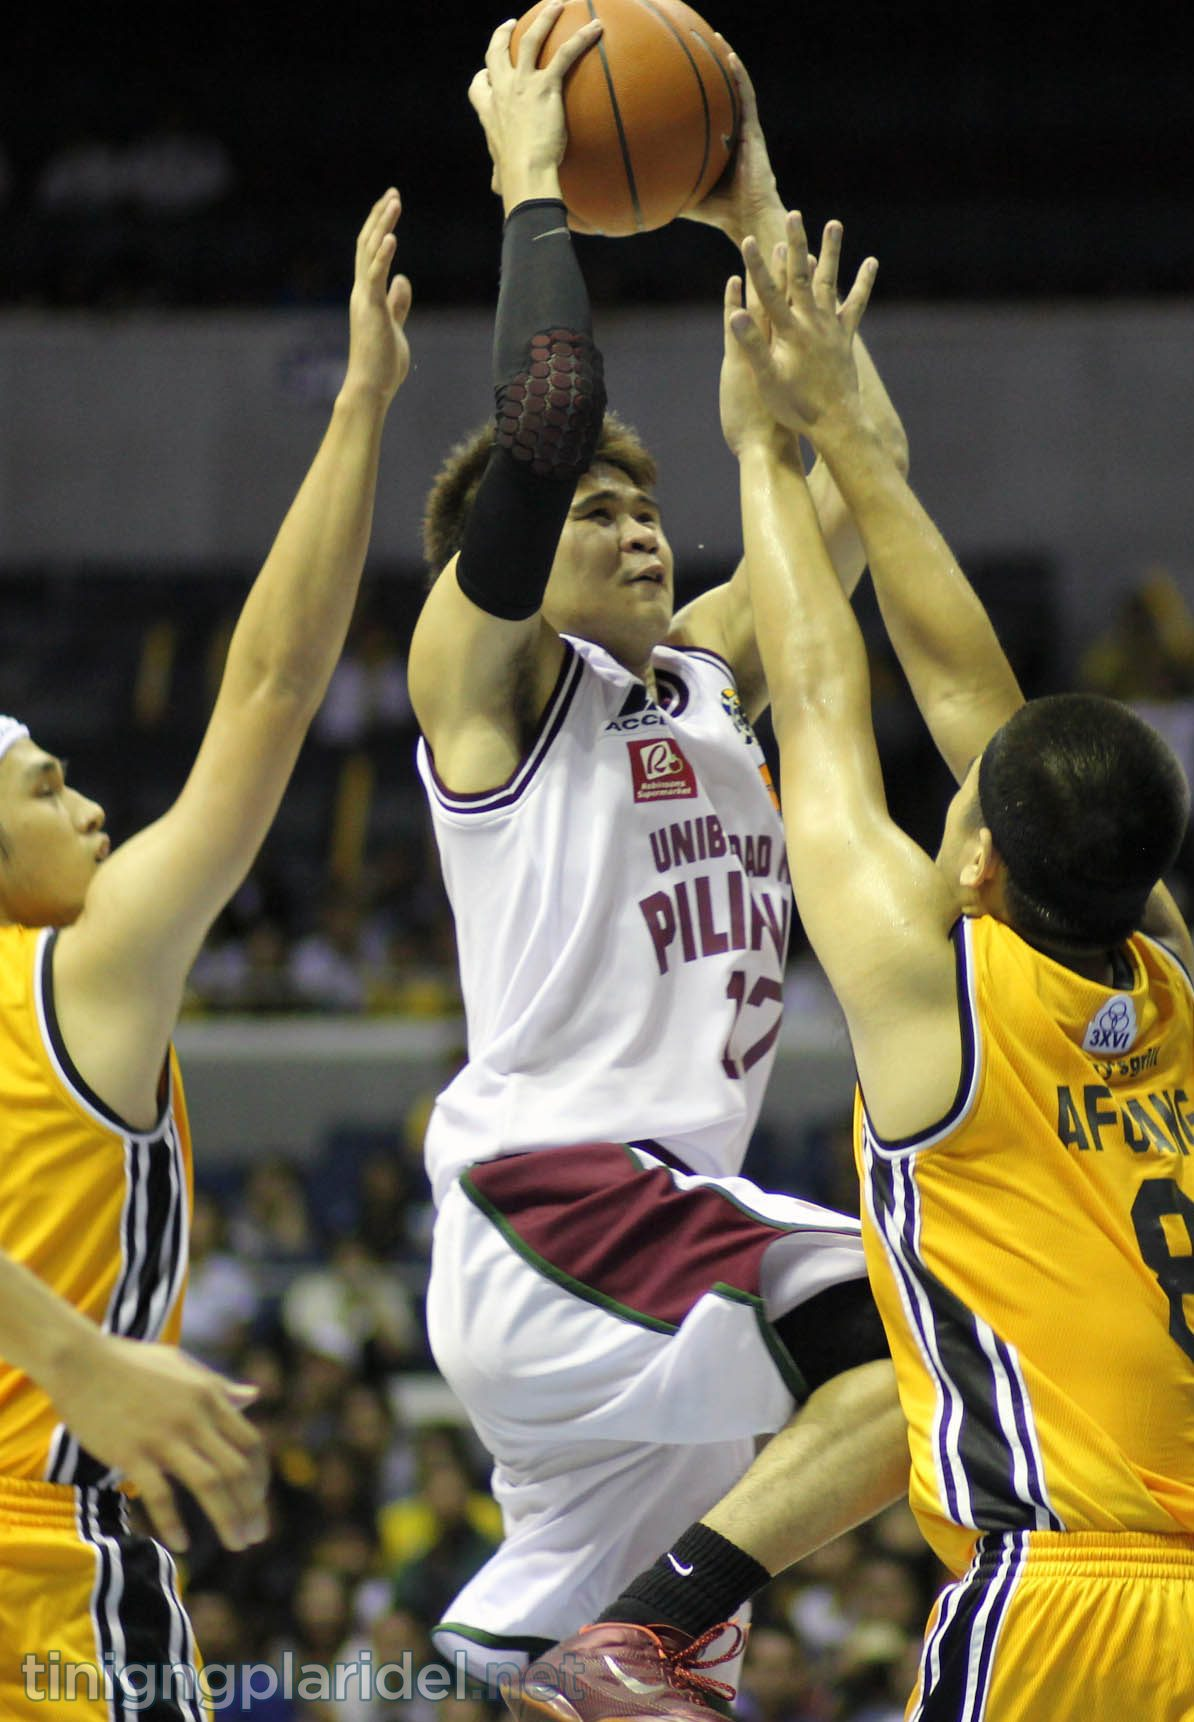 UP still winless after 6 outings, bows to UST